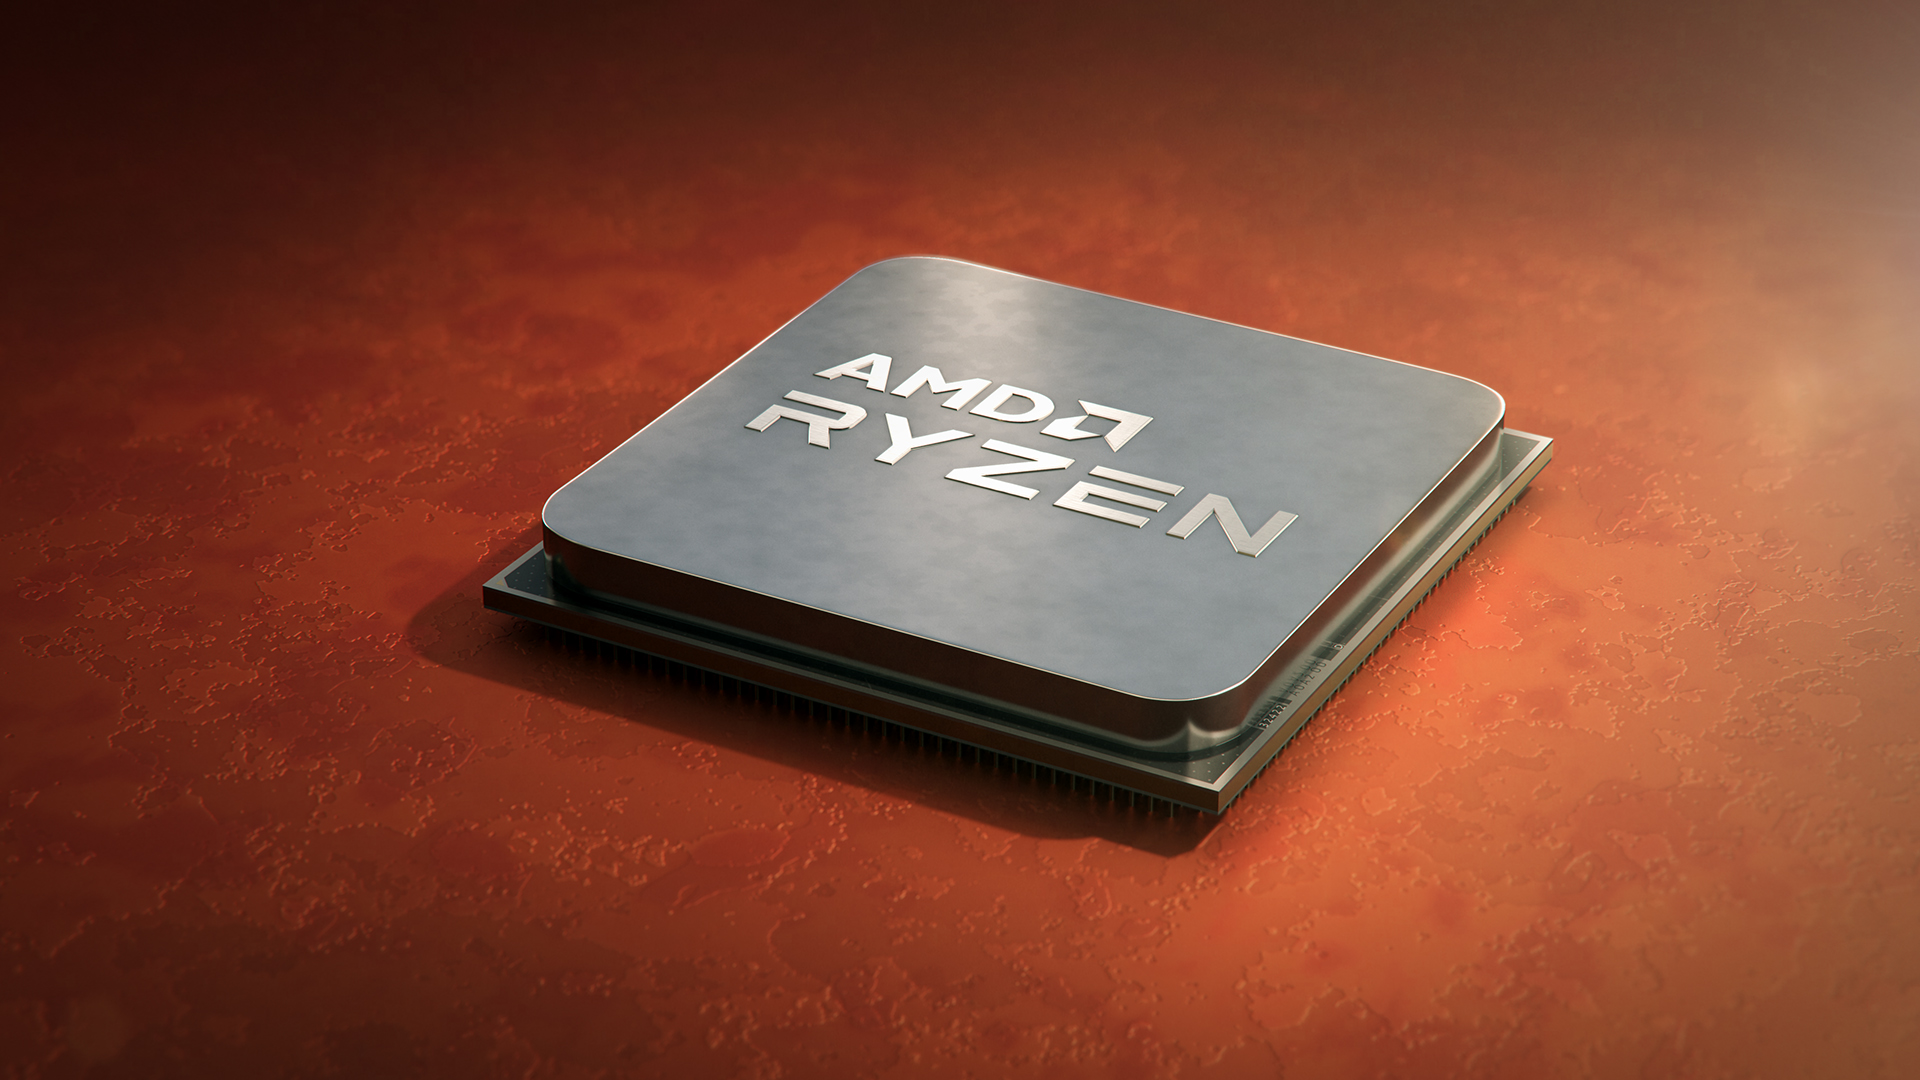 These leaked AMD Zen 4 server specs have us salivating for Ryzen 6000